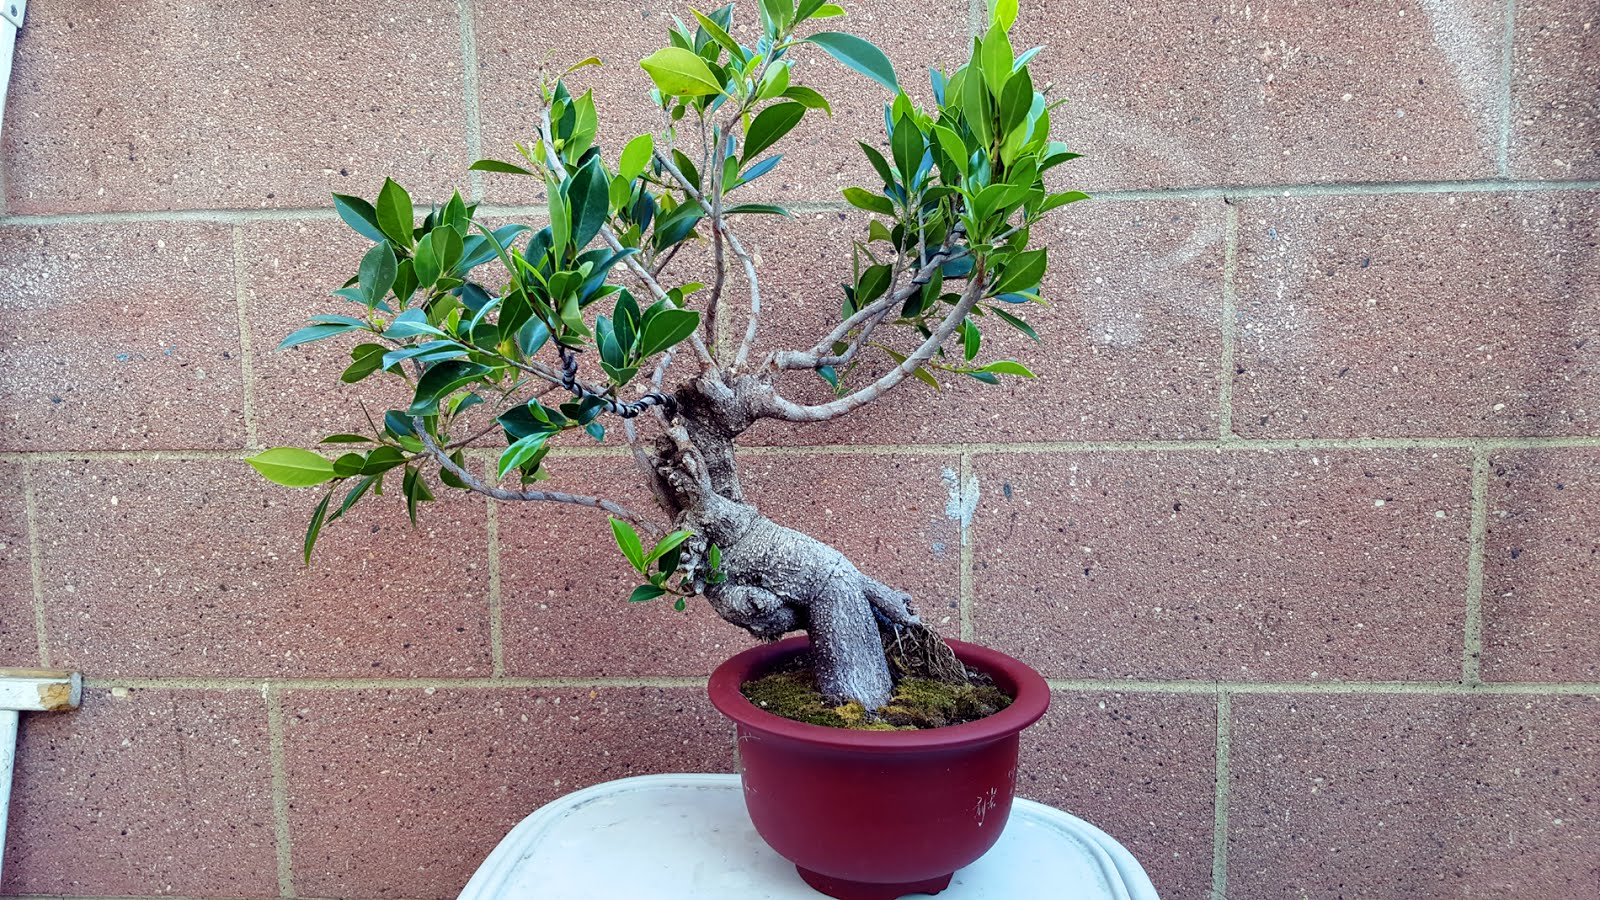 Bonsai Misadventures April 2016